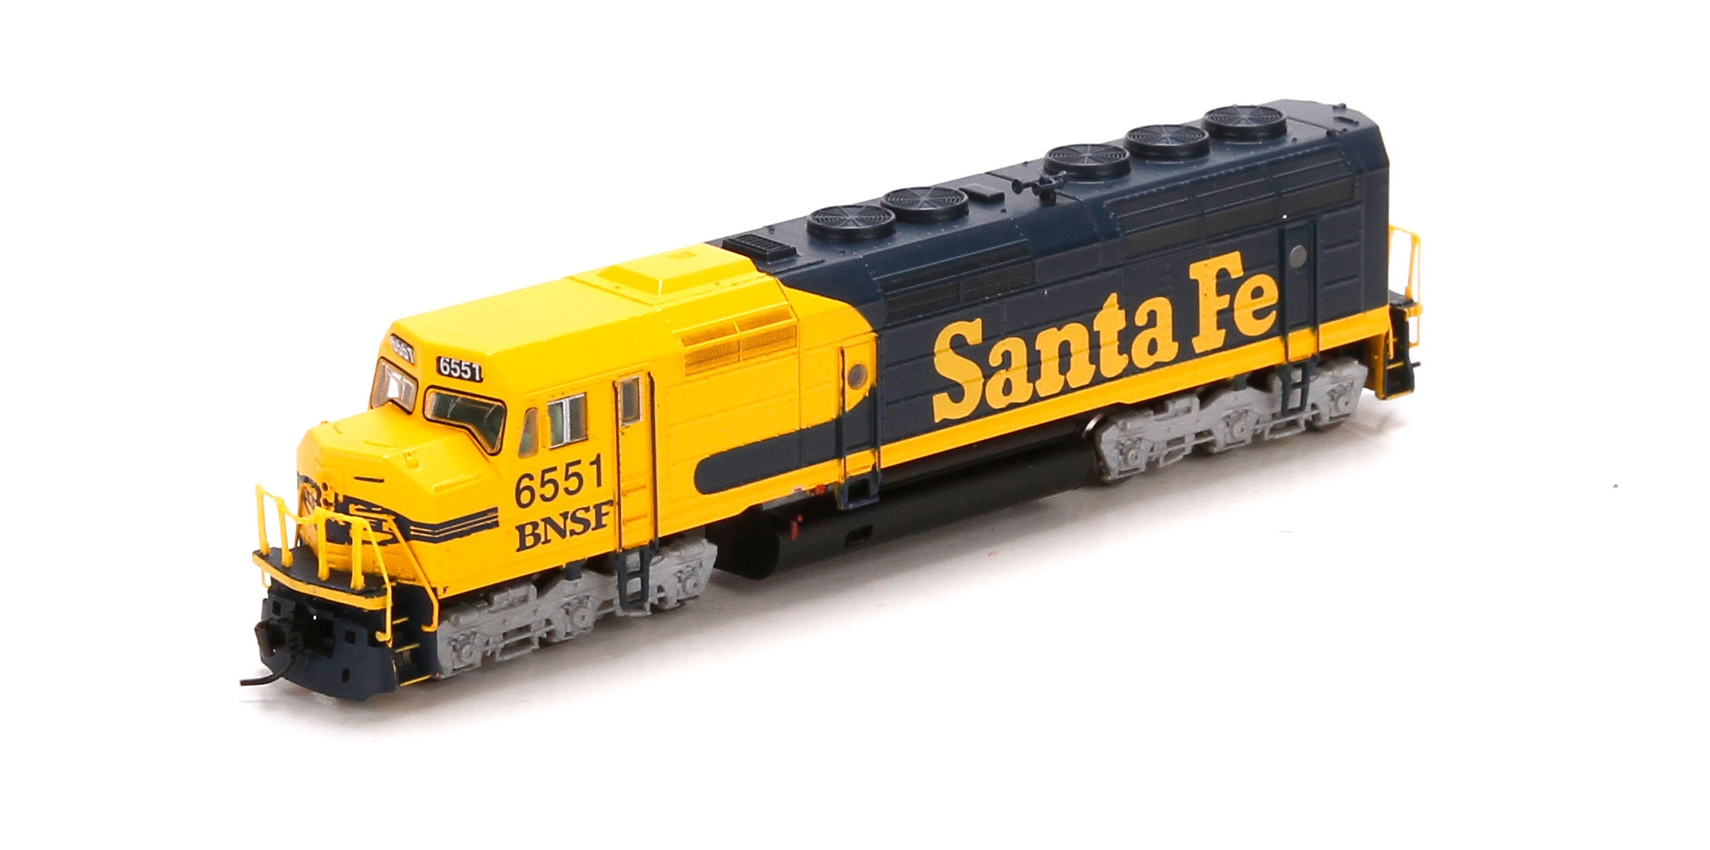 N Scale - Athearn - 22473 - Locomotive, Diesel, EMD F45 - Burlington Northern Santa Fe - 6551